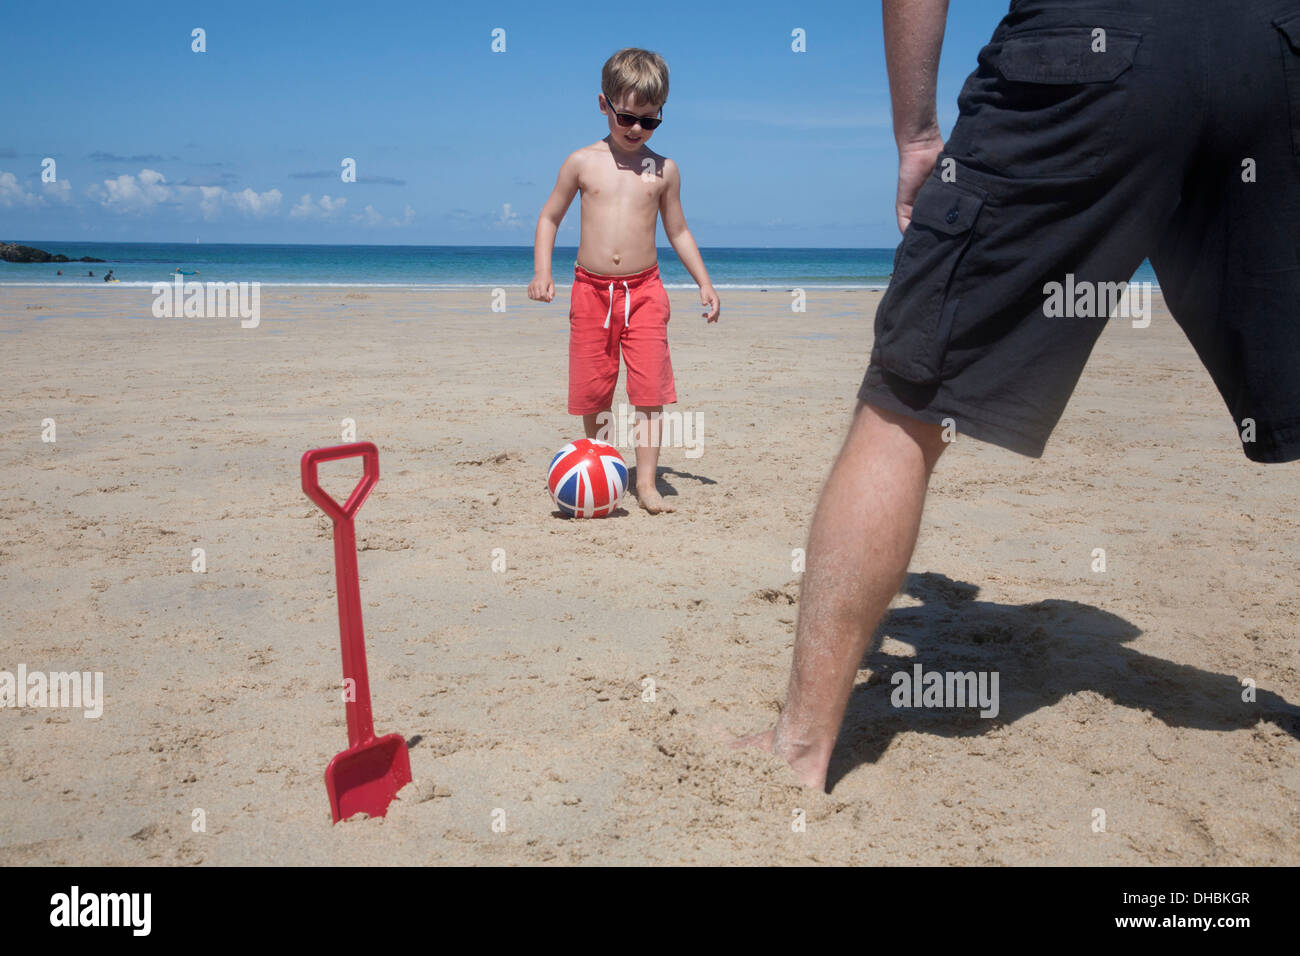 A boy playing football with a man on the sand. Father and son. A beach spade upright in the sand. Stock Photo